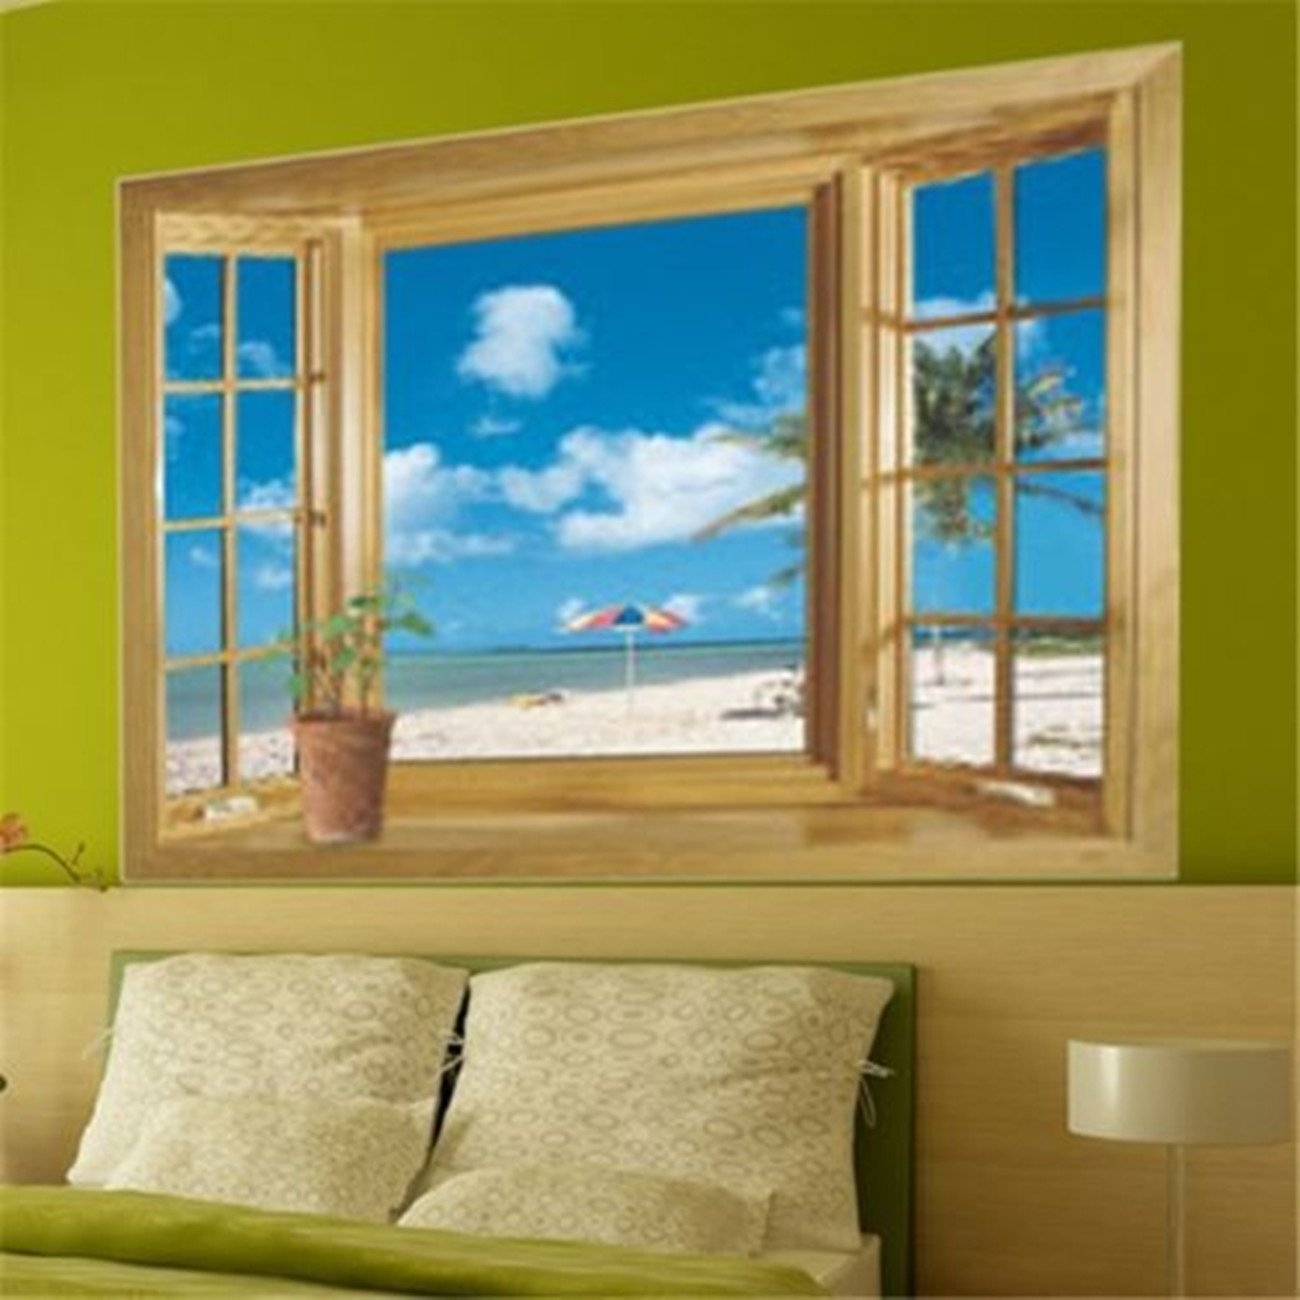 3D Beach Window View Removable Wall Stickers Vinyl Decal Home